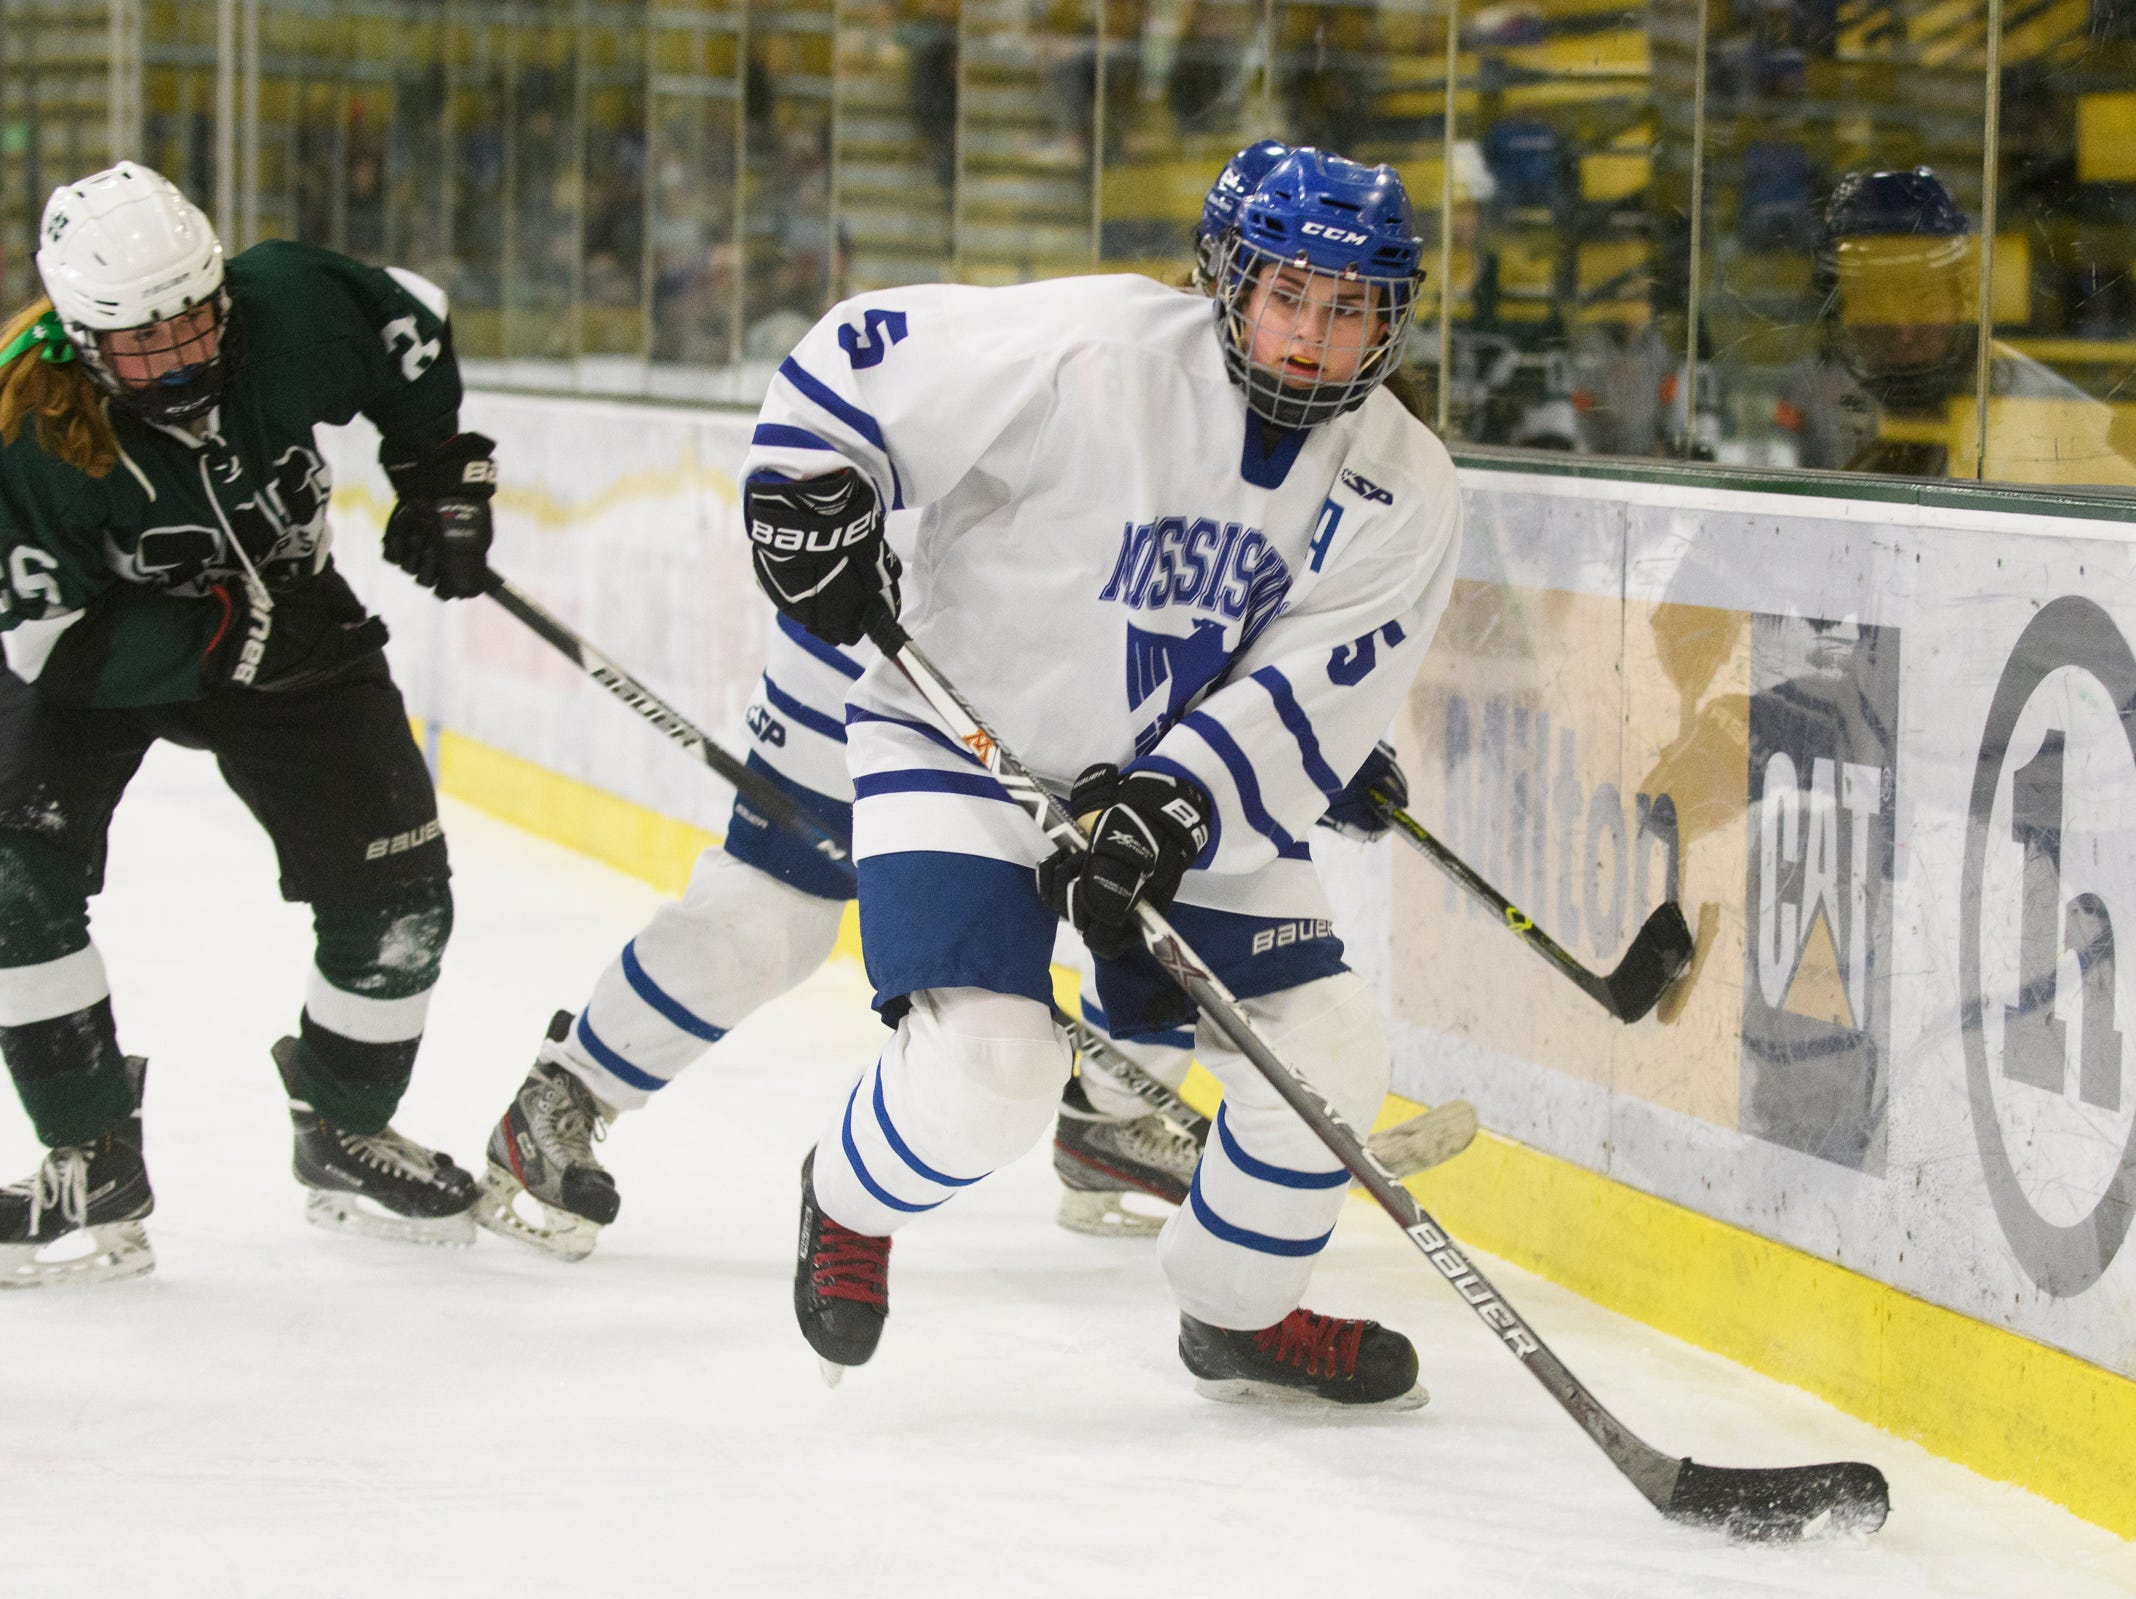 Missisquoi's Brianna Parent (5) looks to pass the puck during the DII girls hockey championship game between the Woodstock Wasps and the Missisquoi Thunderbirds at Gutterson Field House on Thursday night March 14, 2019 in Burlington, Vermont.